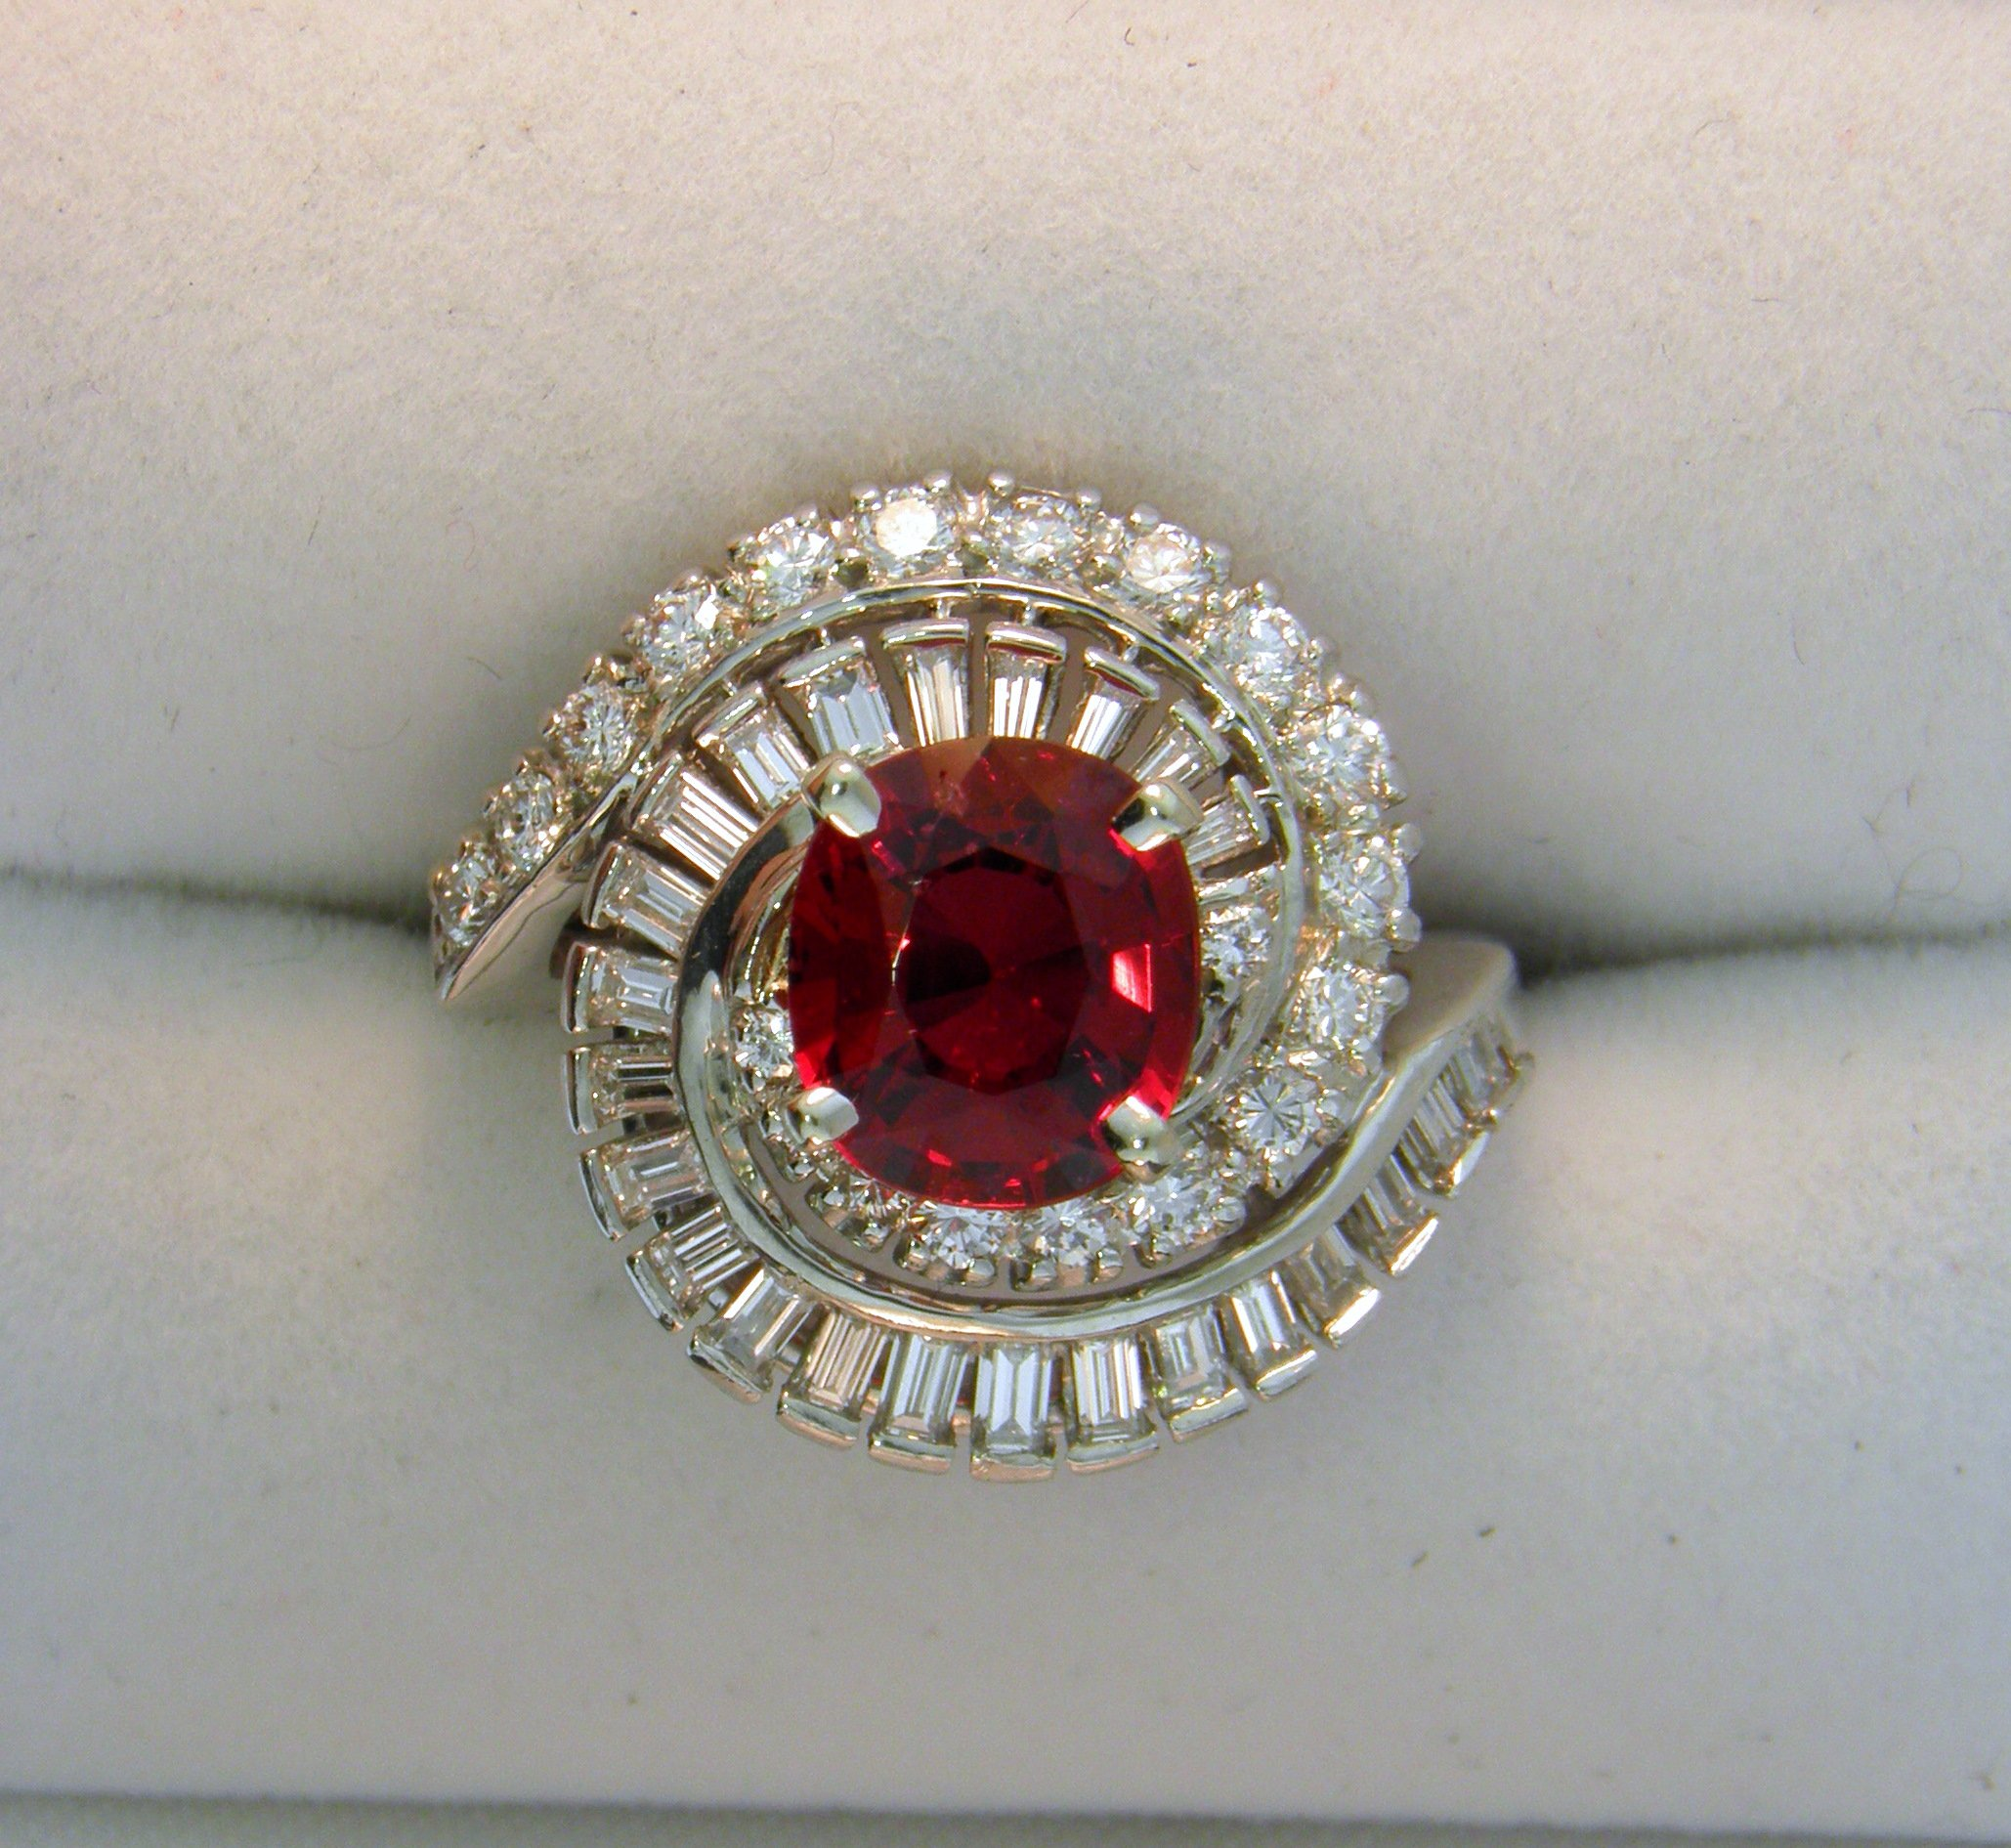 2c263b0f714ee Mid Century Cocktail Ring with Gem Red Spinel - Federal Way Custom ...